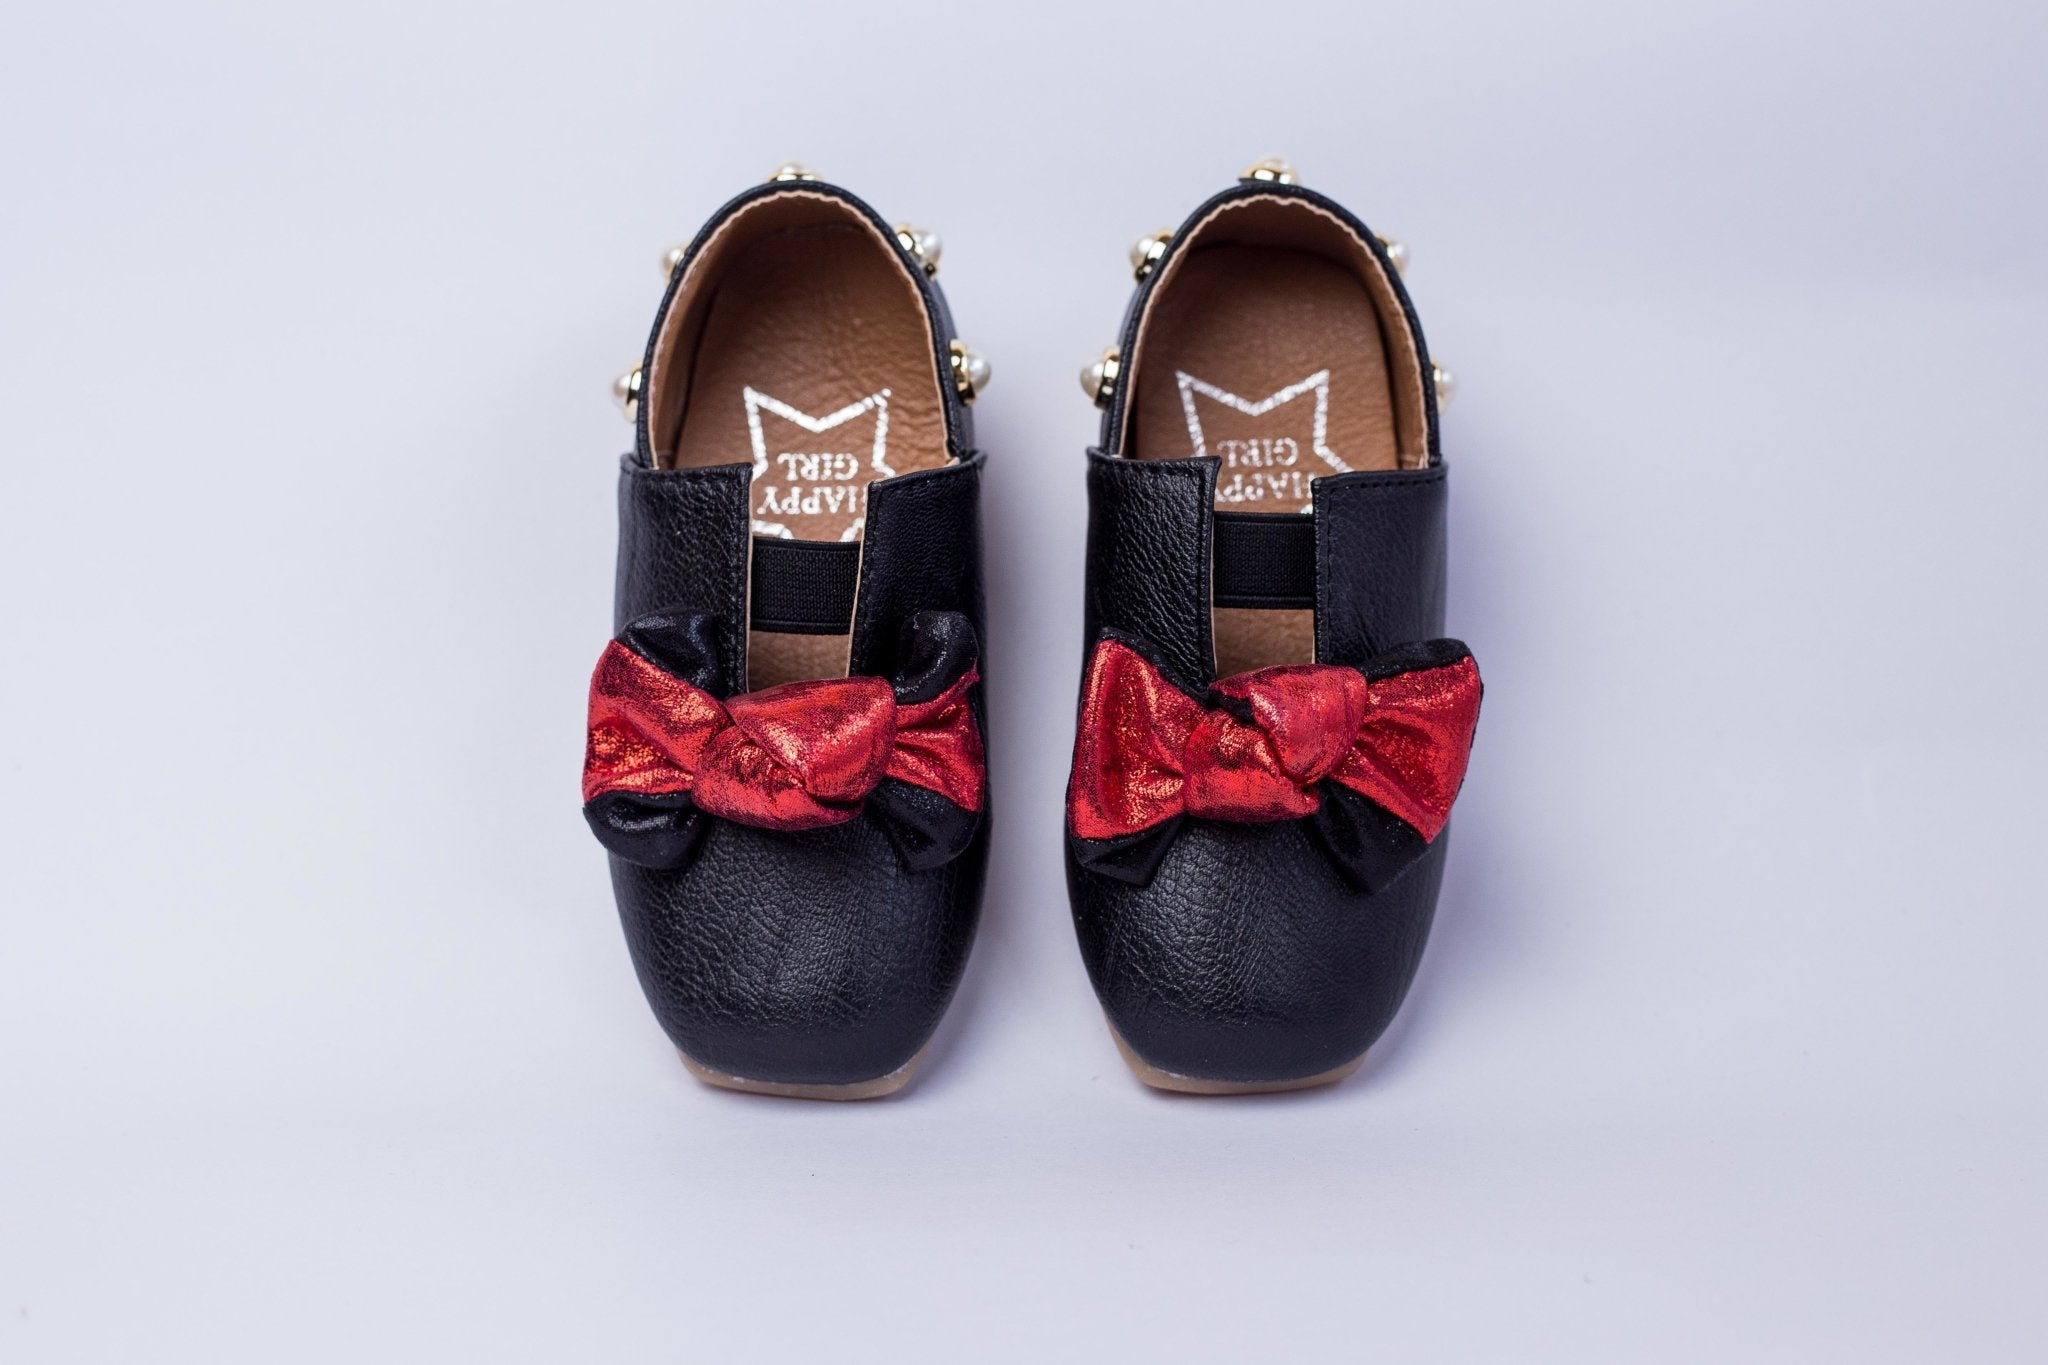 HAPPY GIRL Leather shoes with pearl studs and bow - Offspring